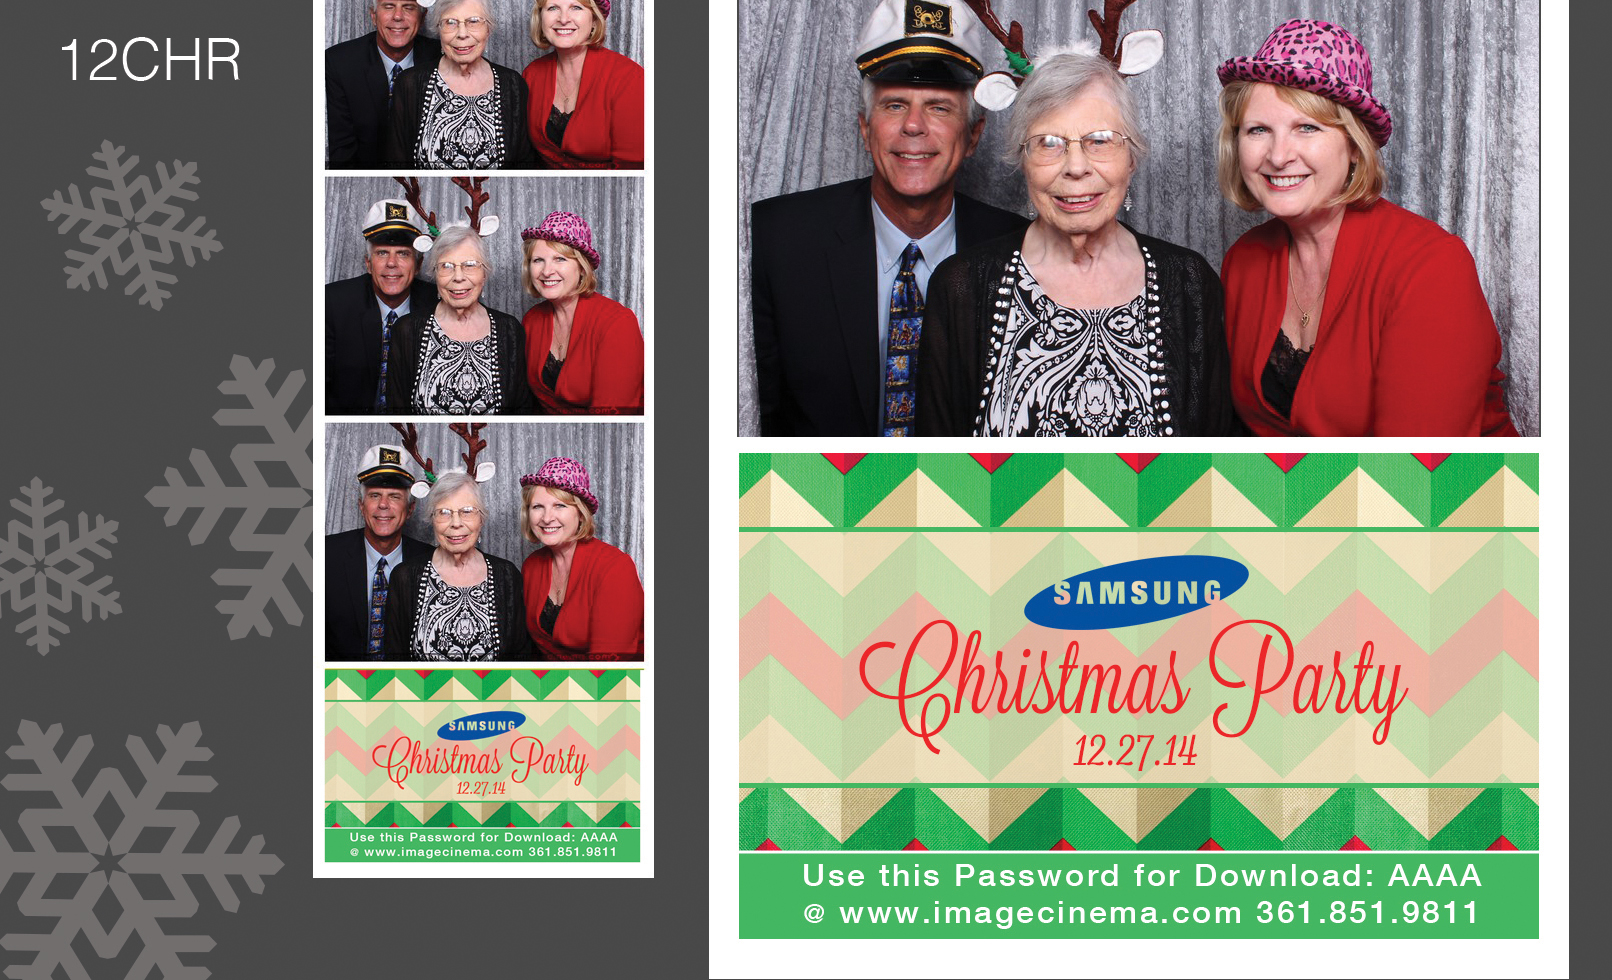 Photo Booth 12CHR